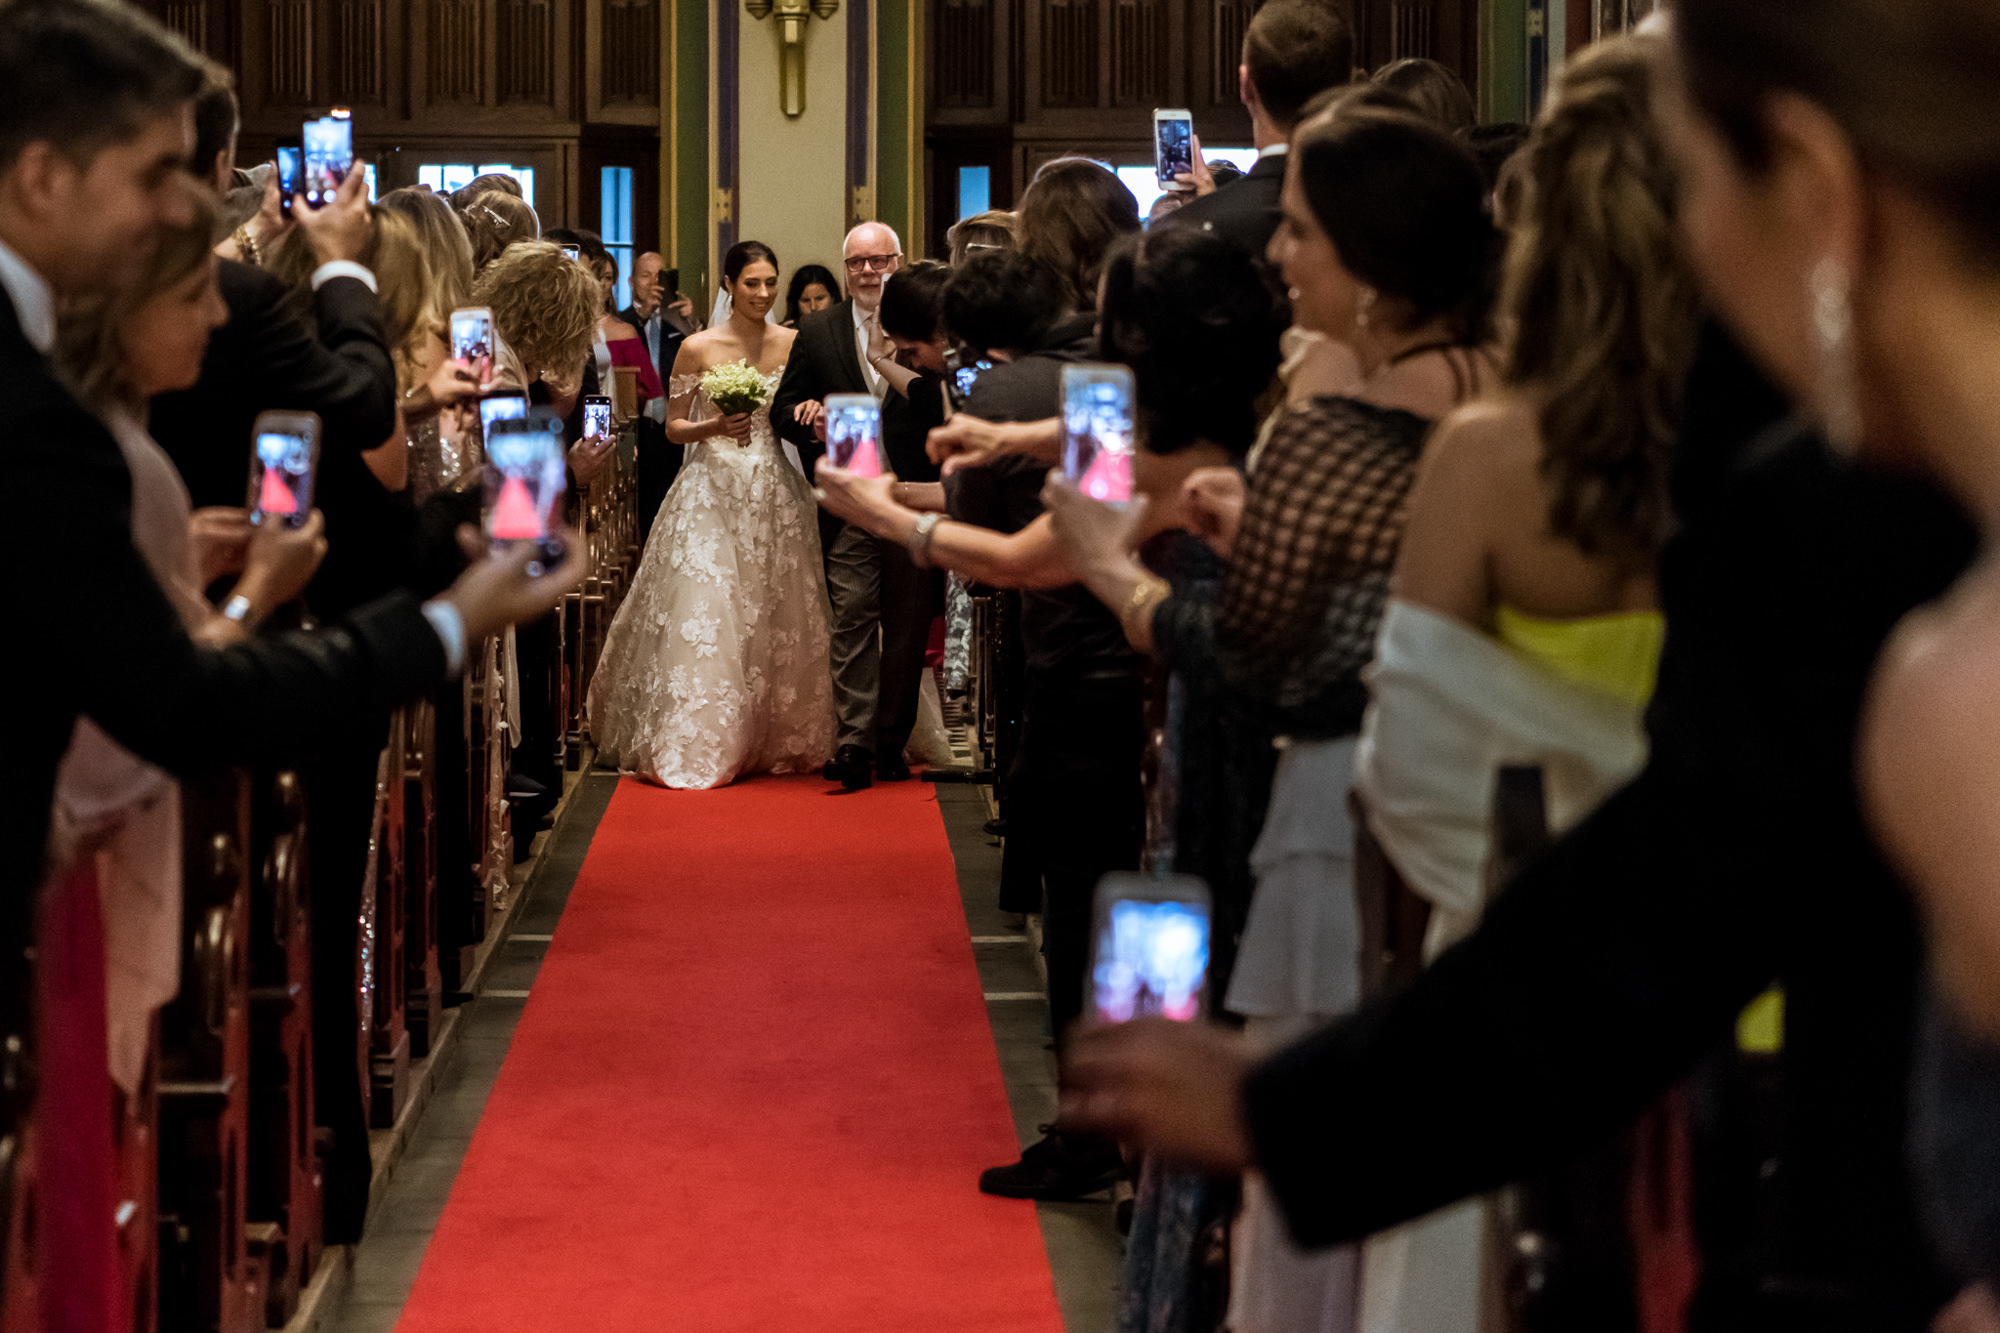 Father and bride processional surrounded by phones photo by Fotobelle: Isabelle Hattink